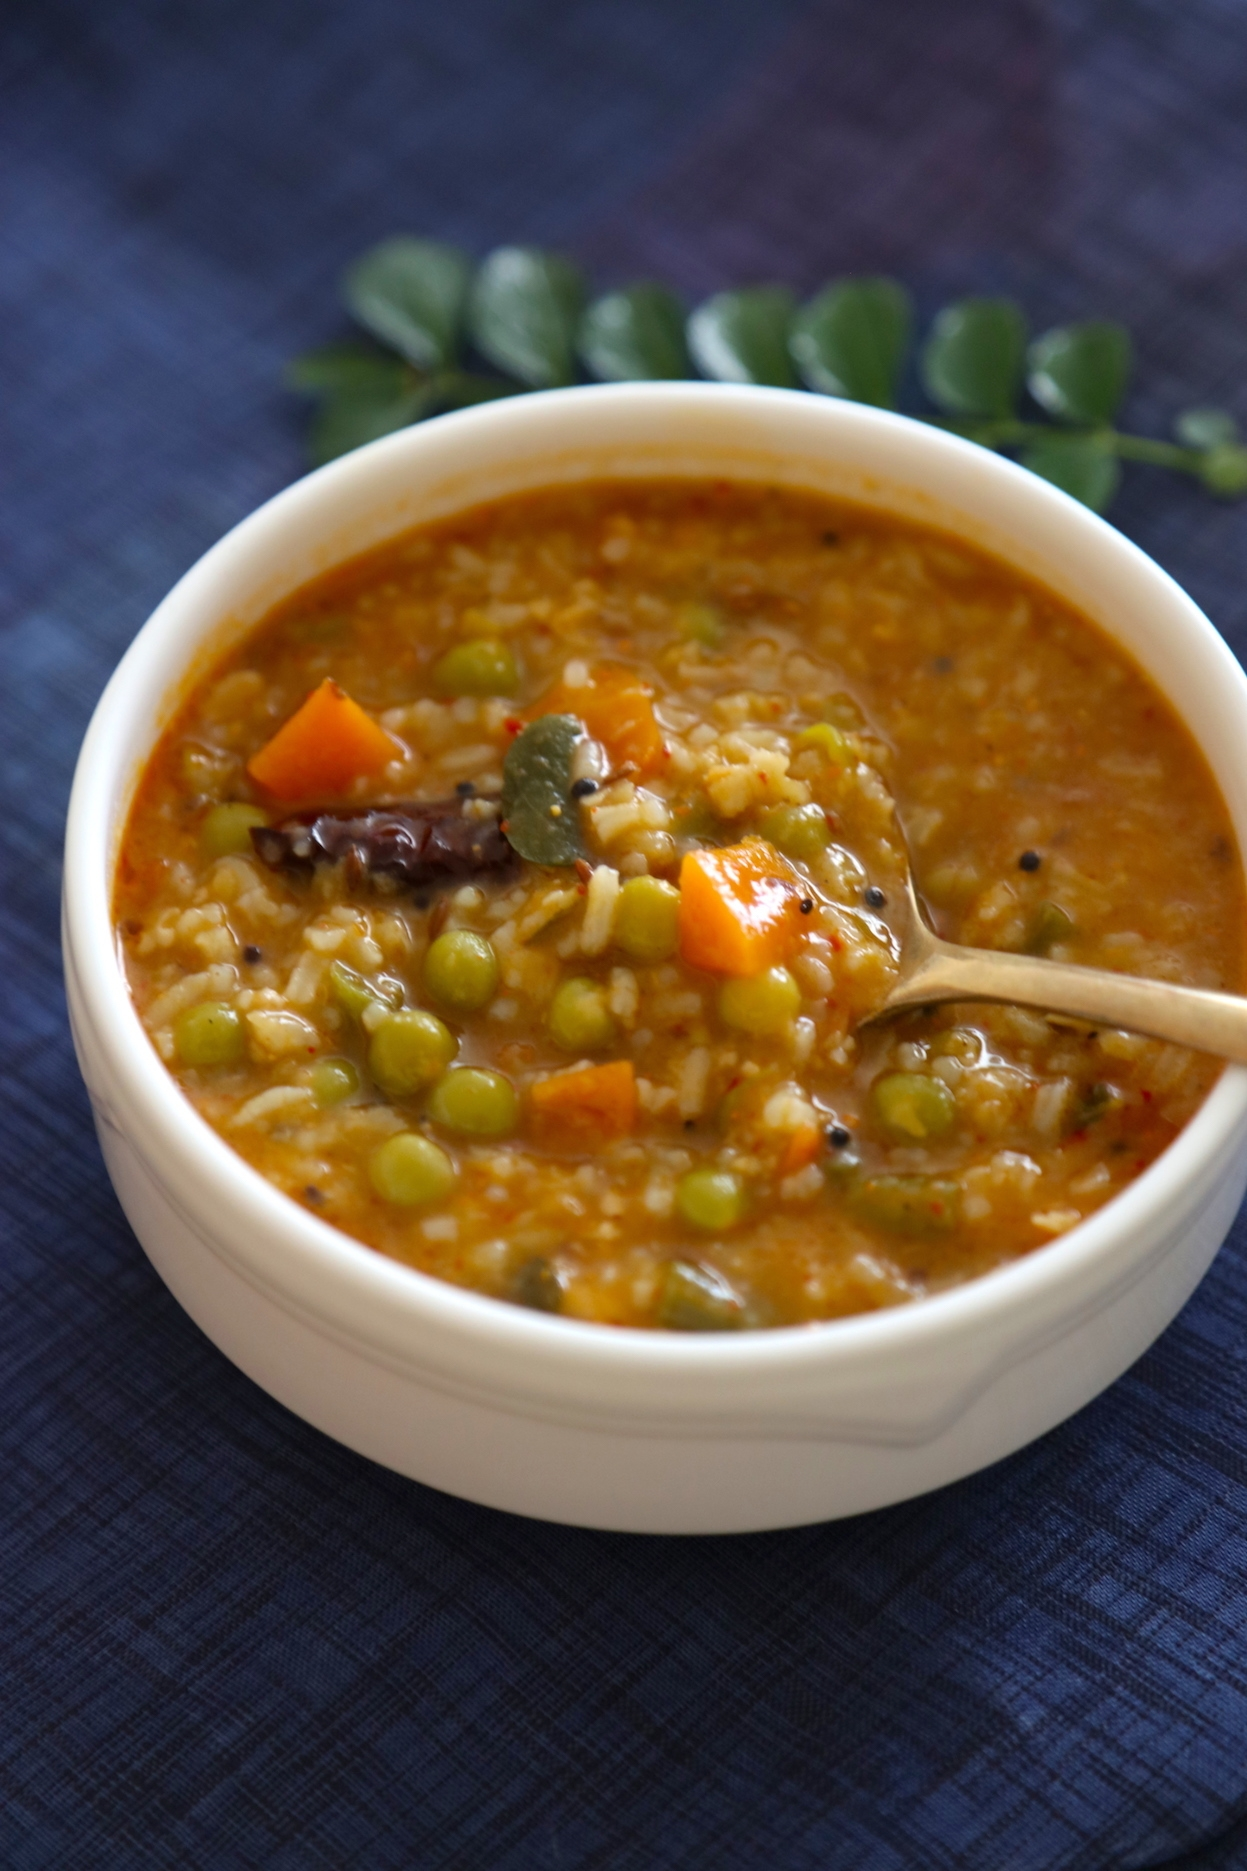 BISE BELE BATH: HOT TANGY RICE AND LENTIL STEW